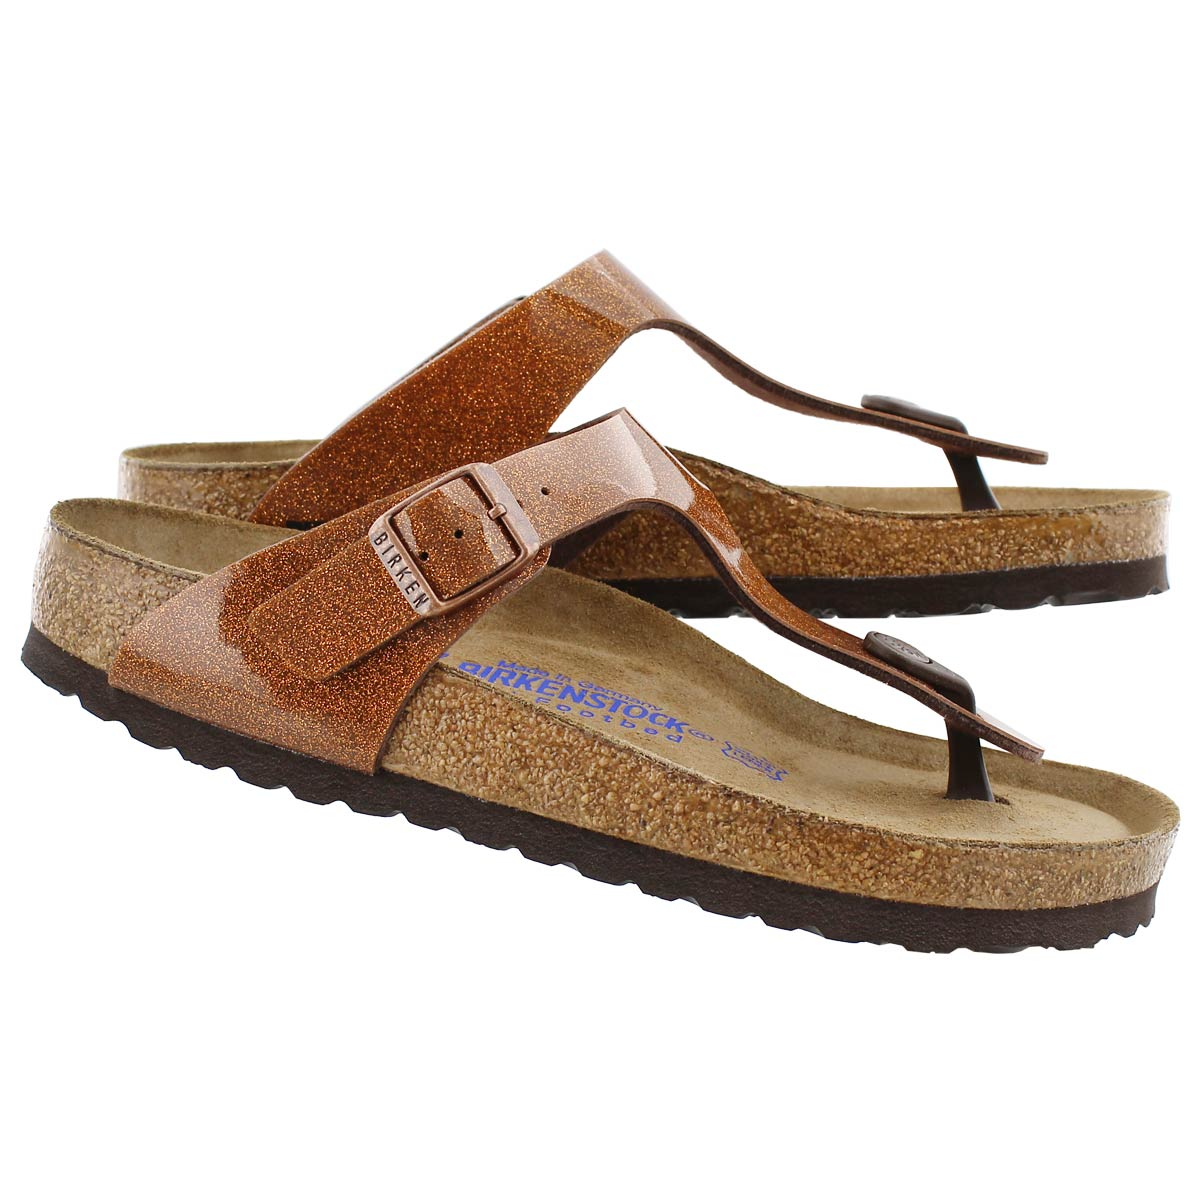 Lds Gizeh SF magic galaxy brz sandal